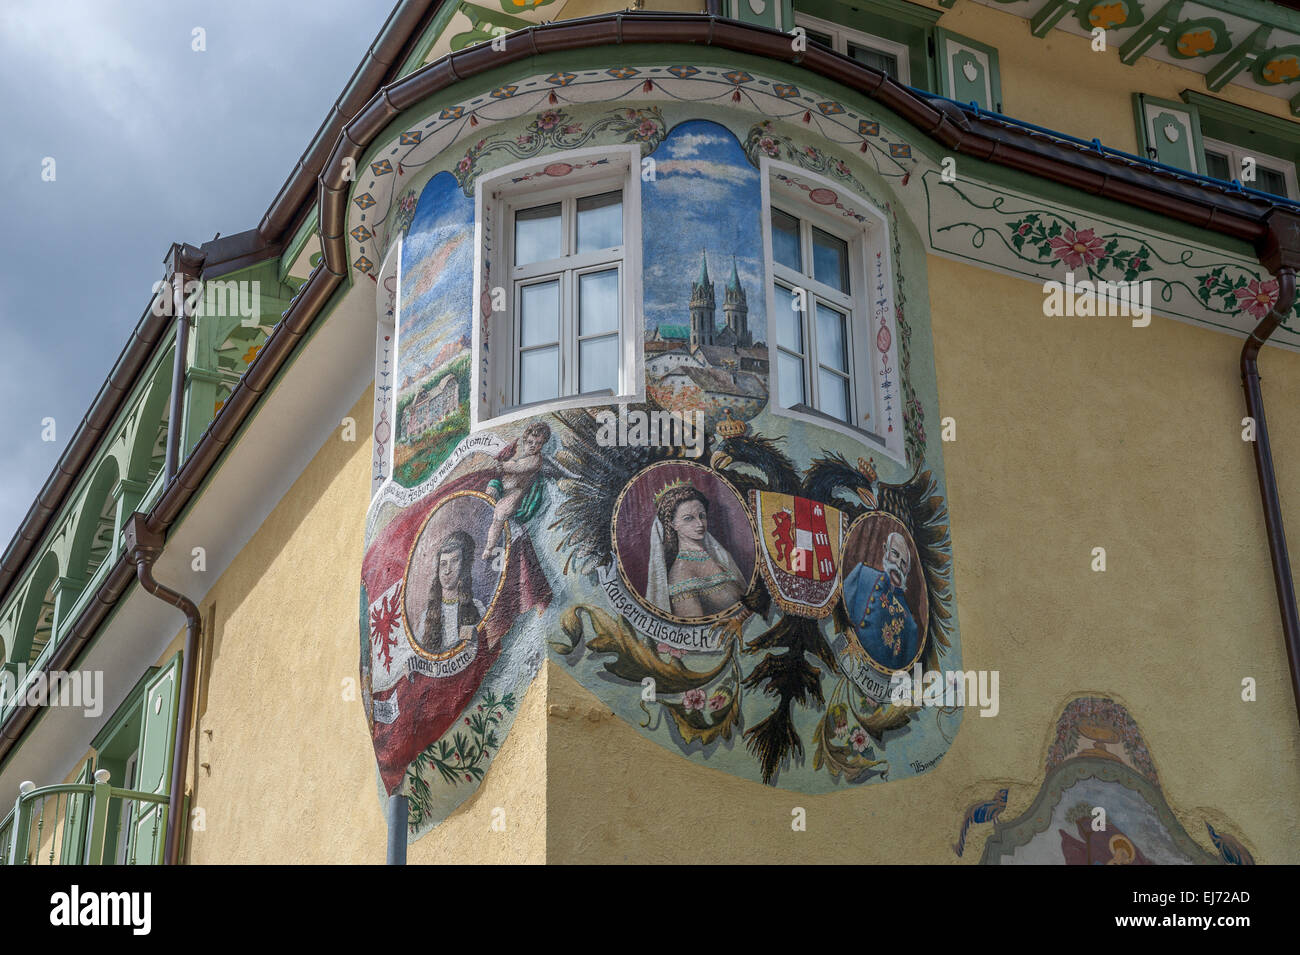 Hotel Dolomiti, bay window with wall painting design of the Austrian Empire, Canazei, Trentino-Alto Adige, Italy - Stock Image